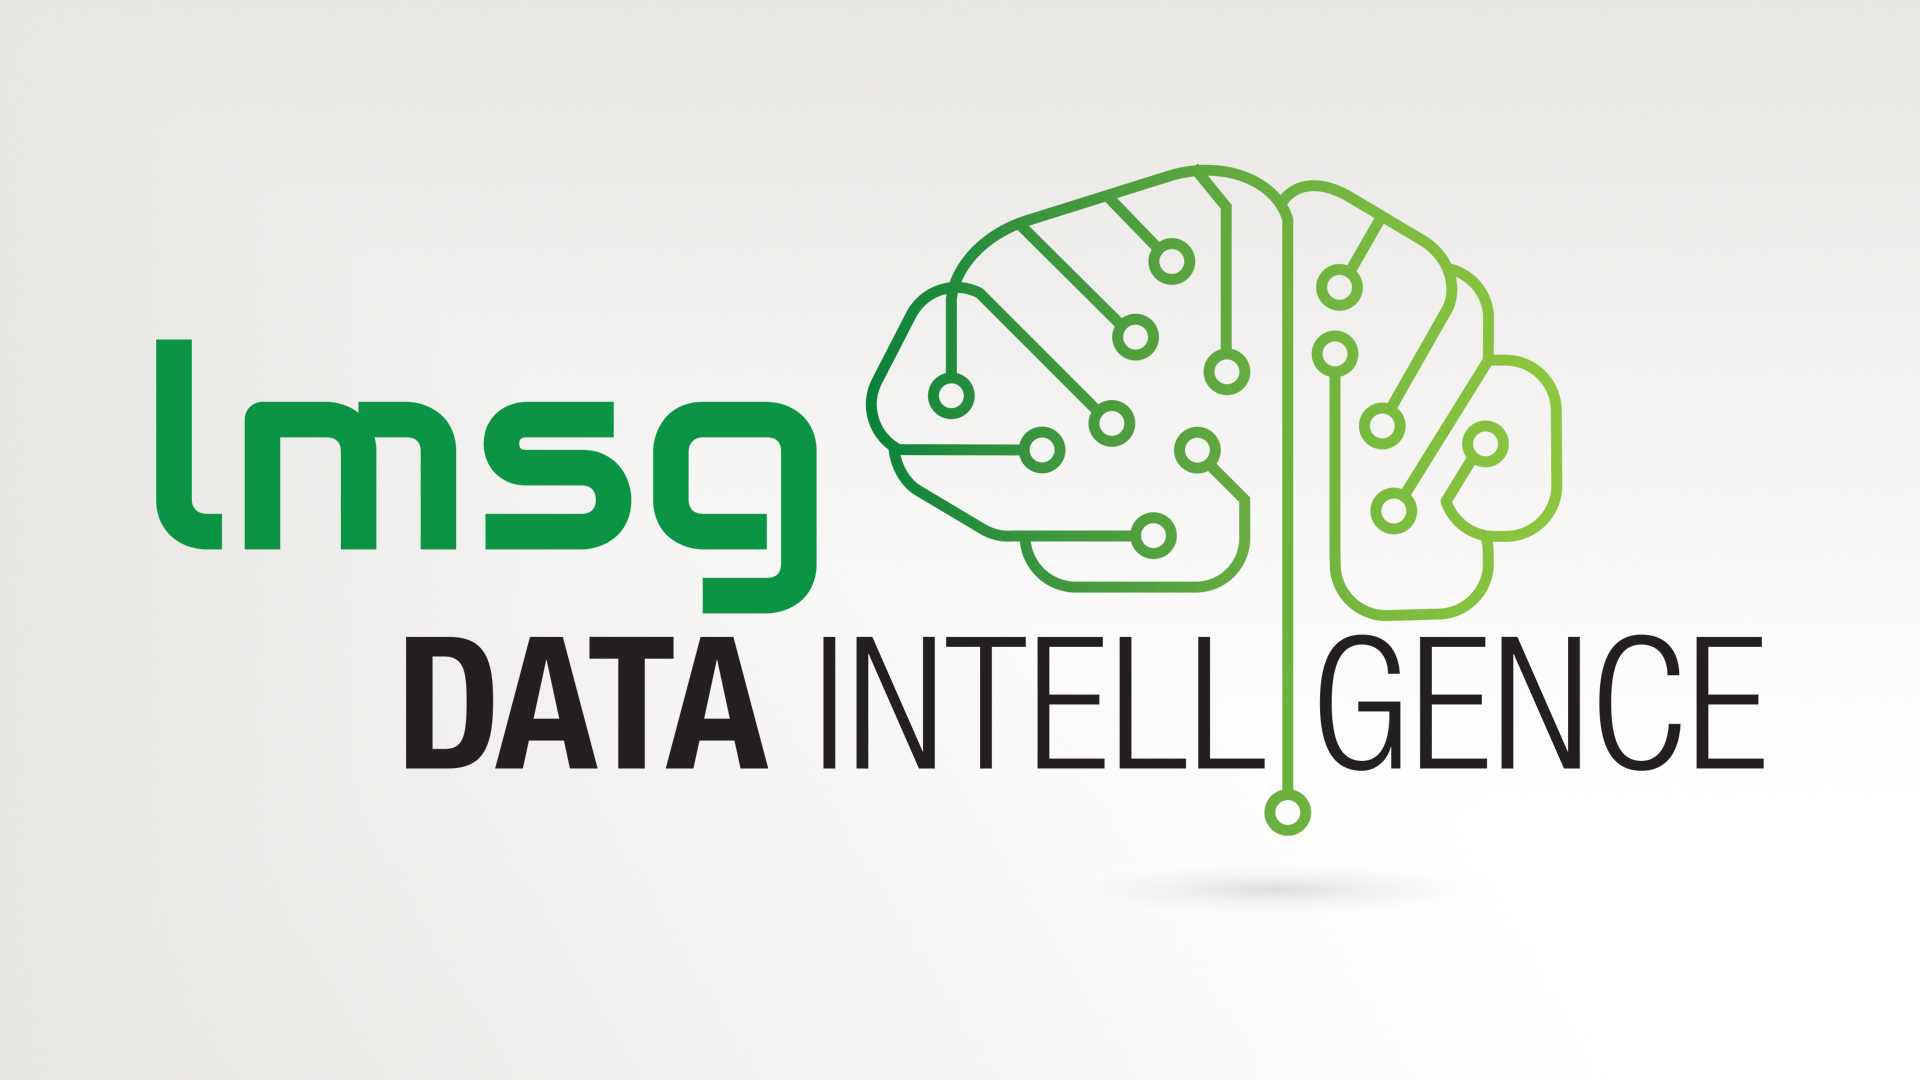 LMSG Data Intelligence